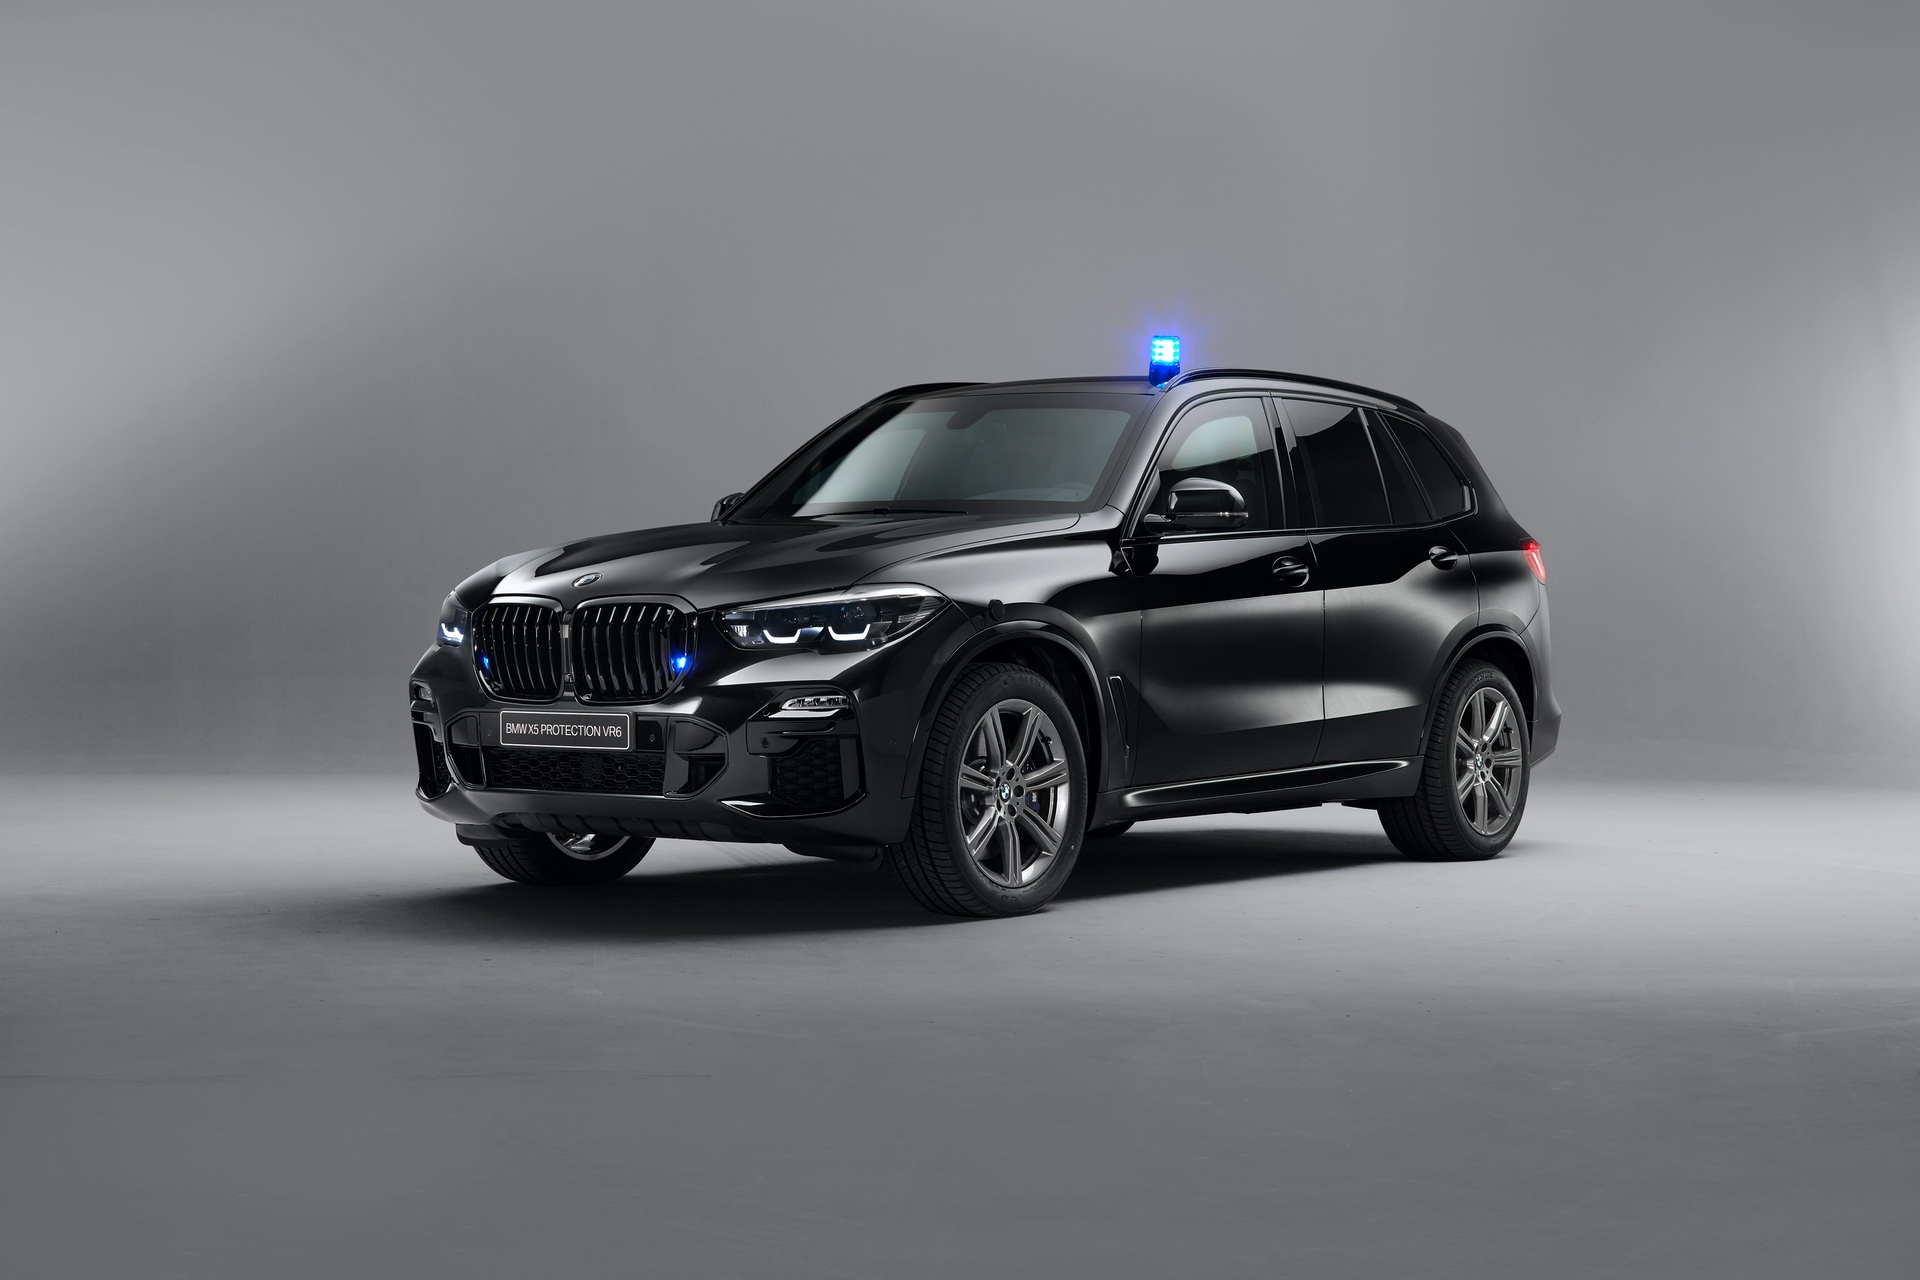 BMW X5 Protection VR6 4